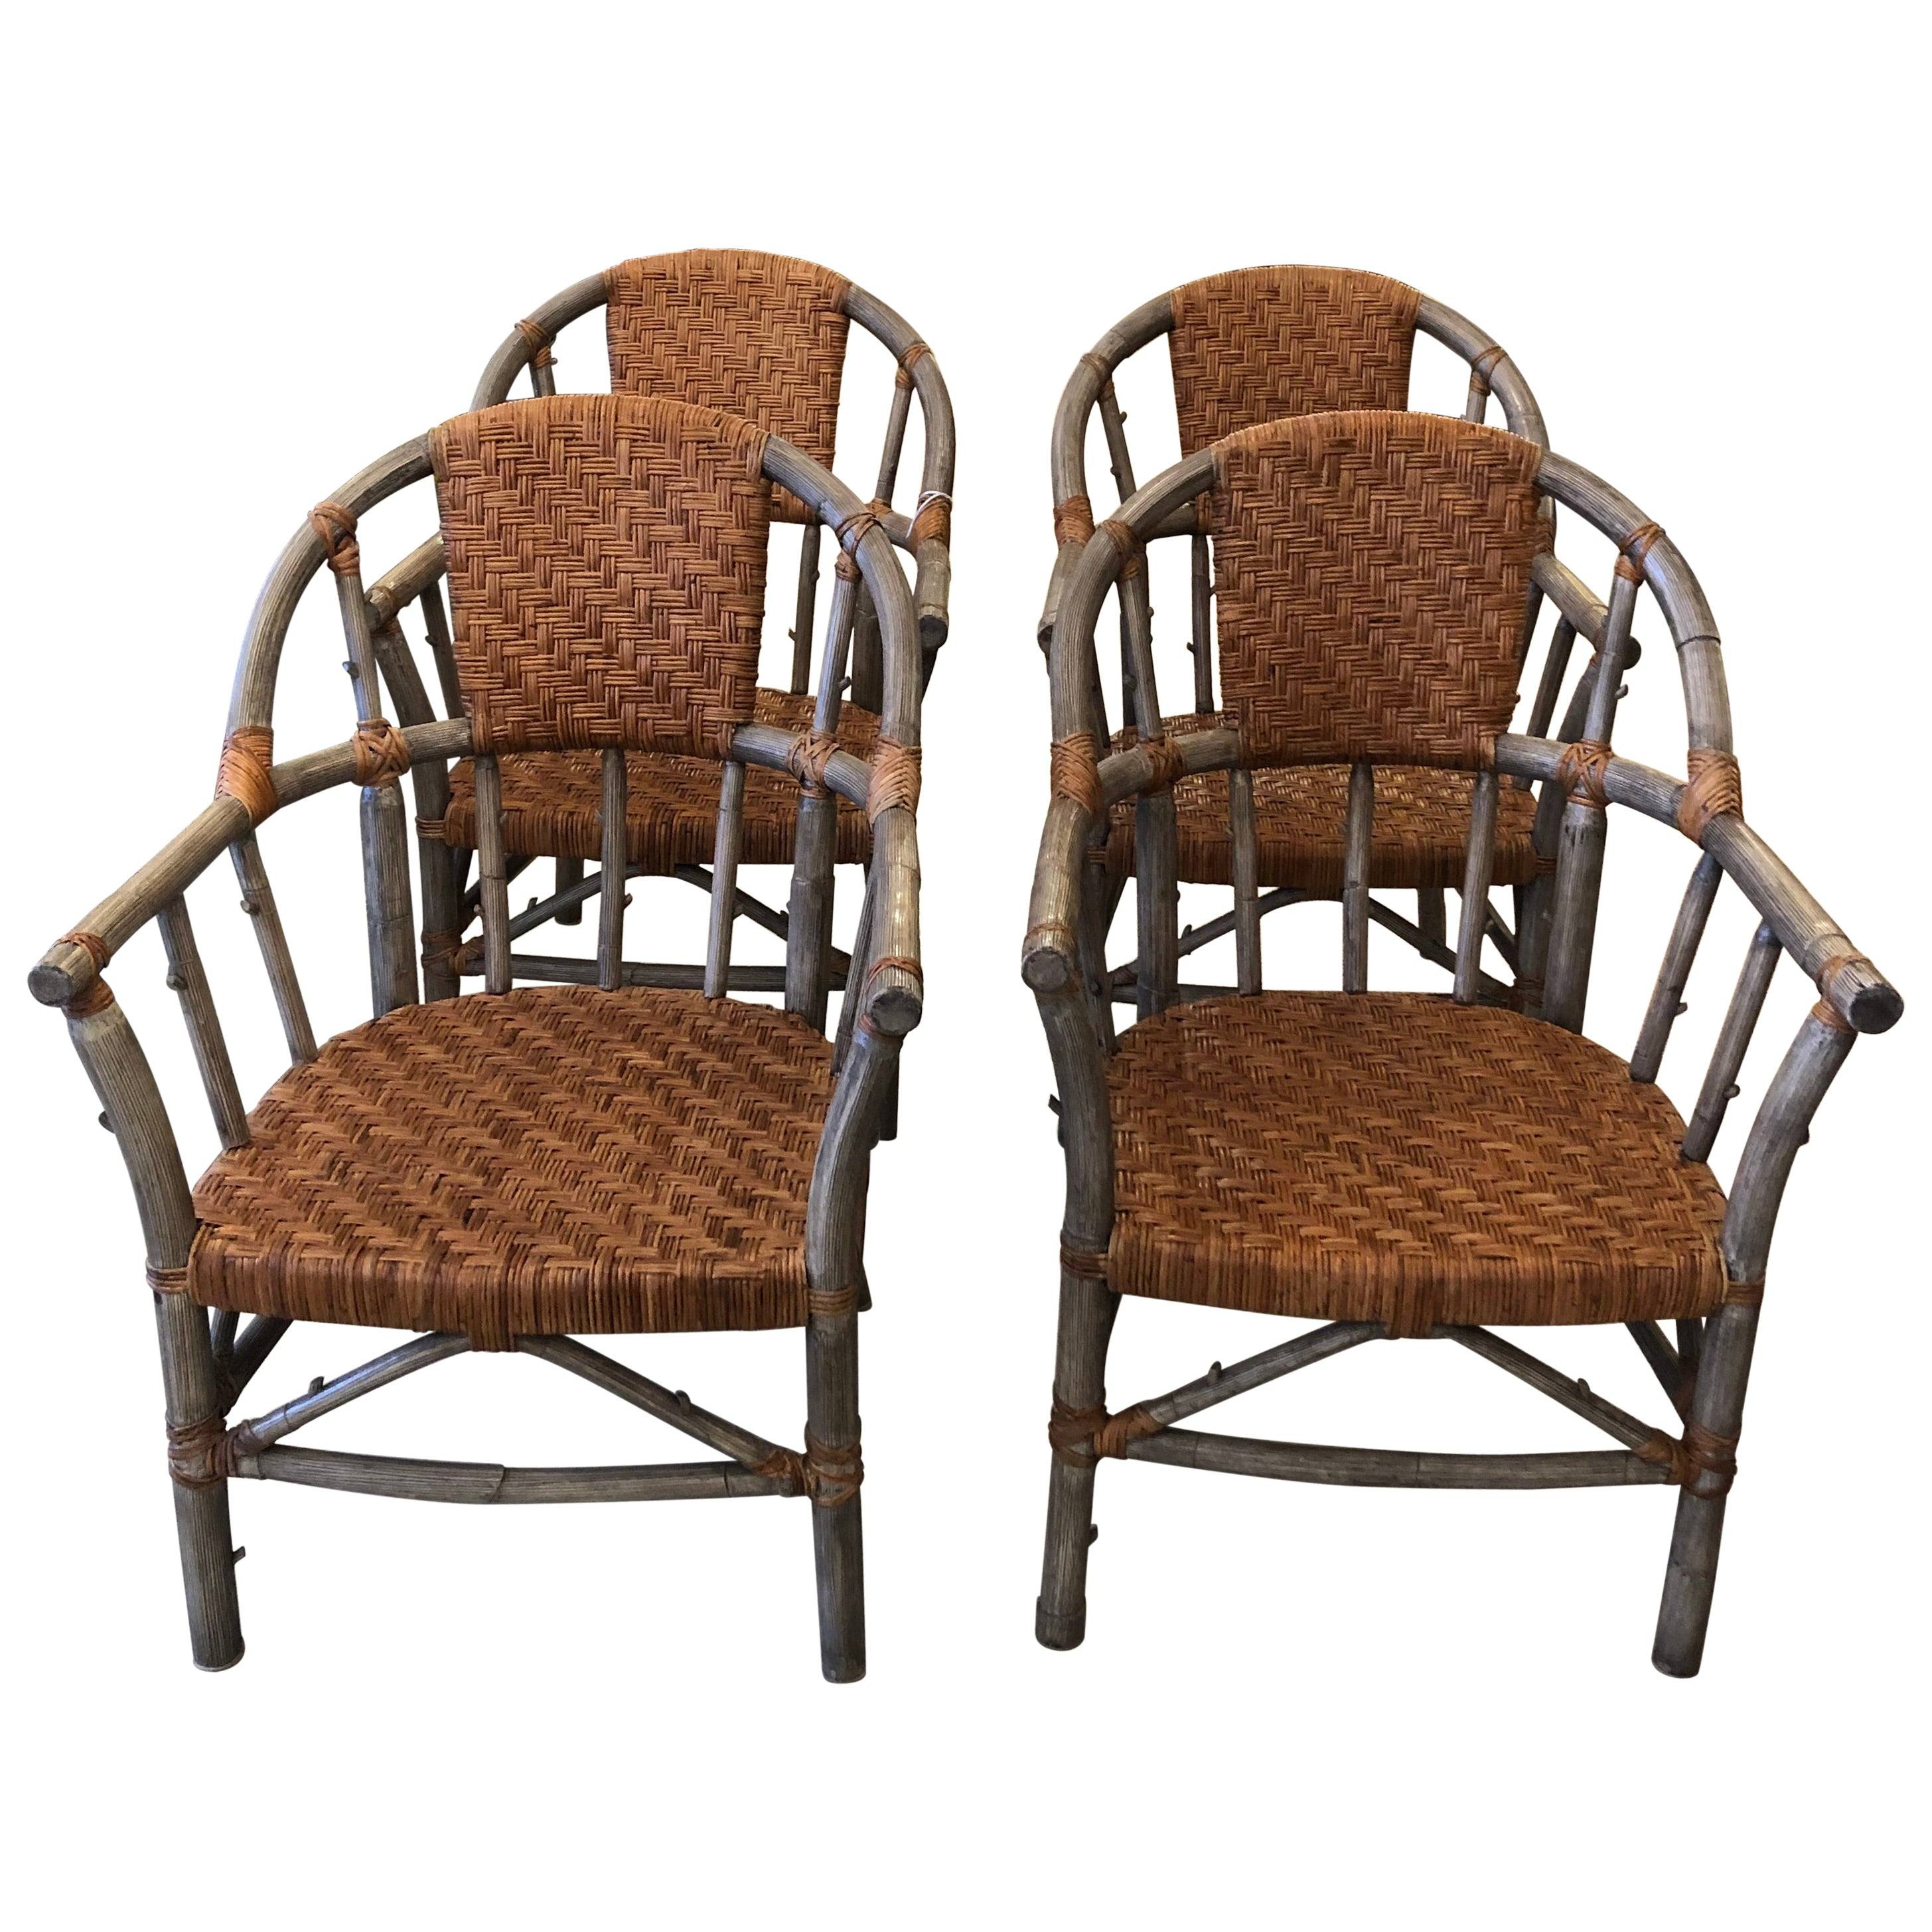 Stunning Set of 4 Faux Bois and Woven Rattan Captain Style Dining Chairs